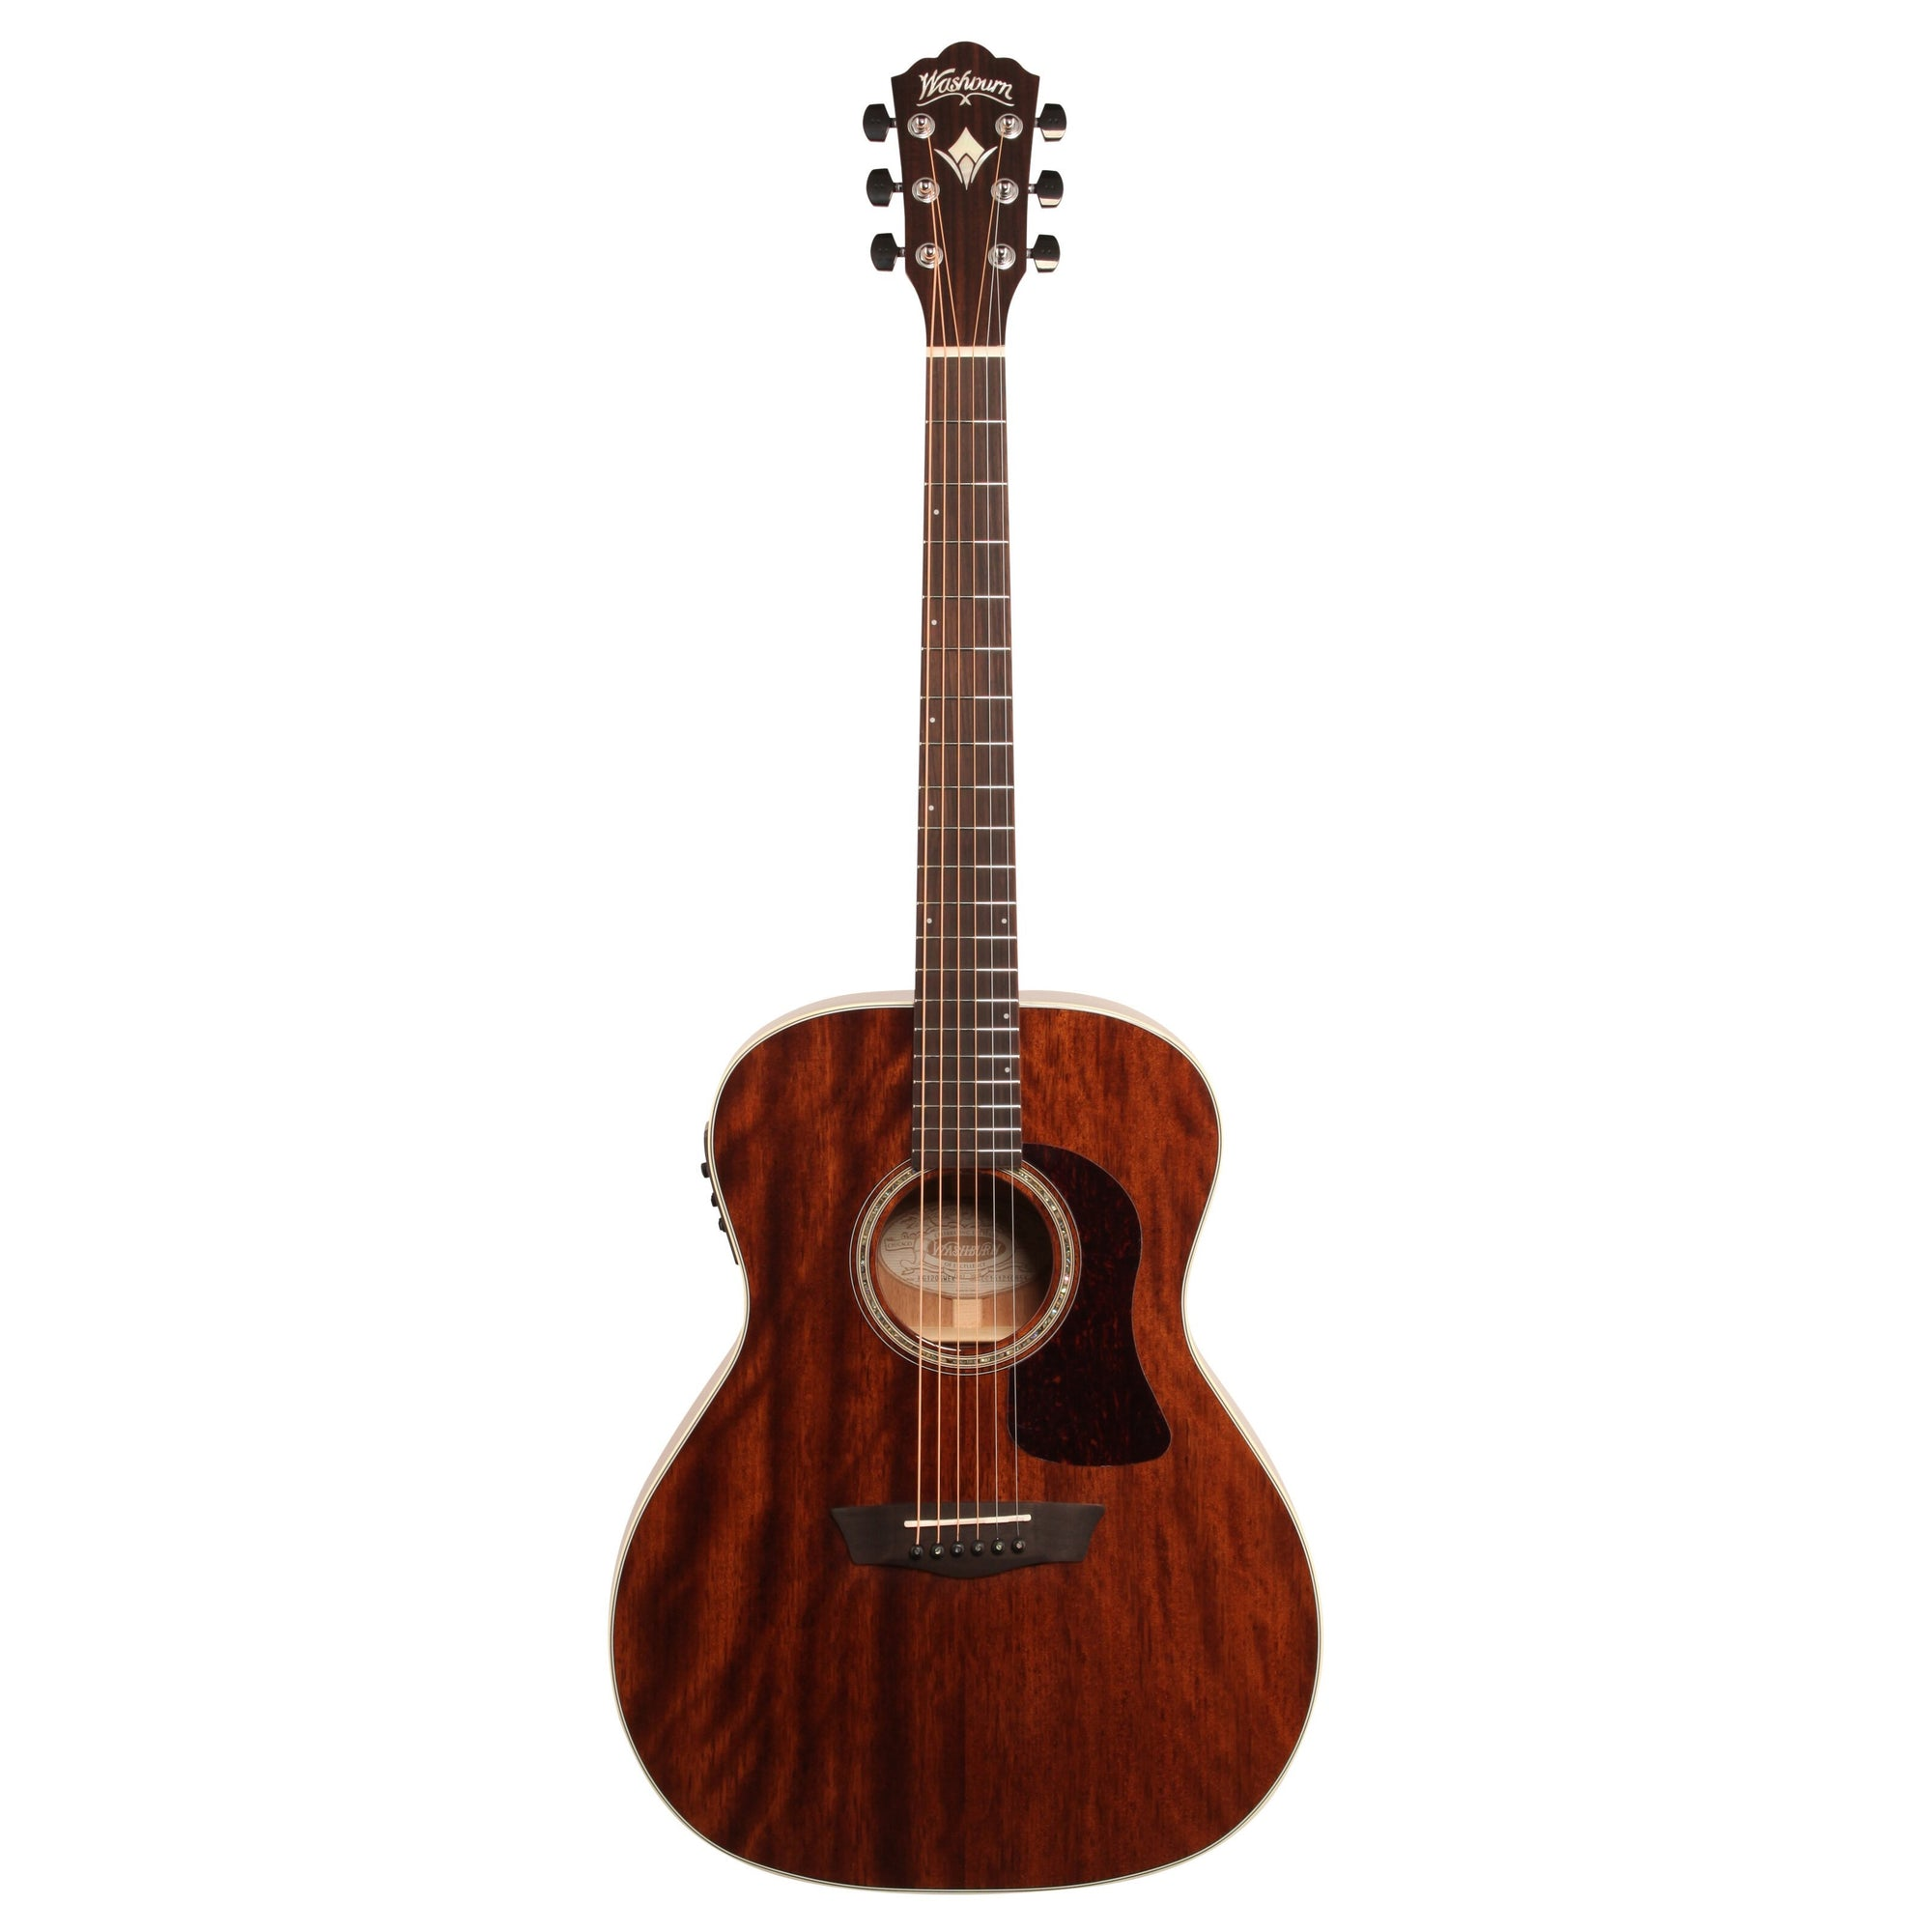 Washburn Heritage 100 Series HG120SWEK Grand Auditorium Acoustic-Electric Guitar (with Case), Natural, HG120SWEK